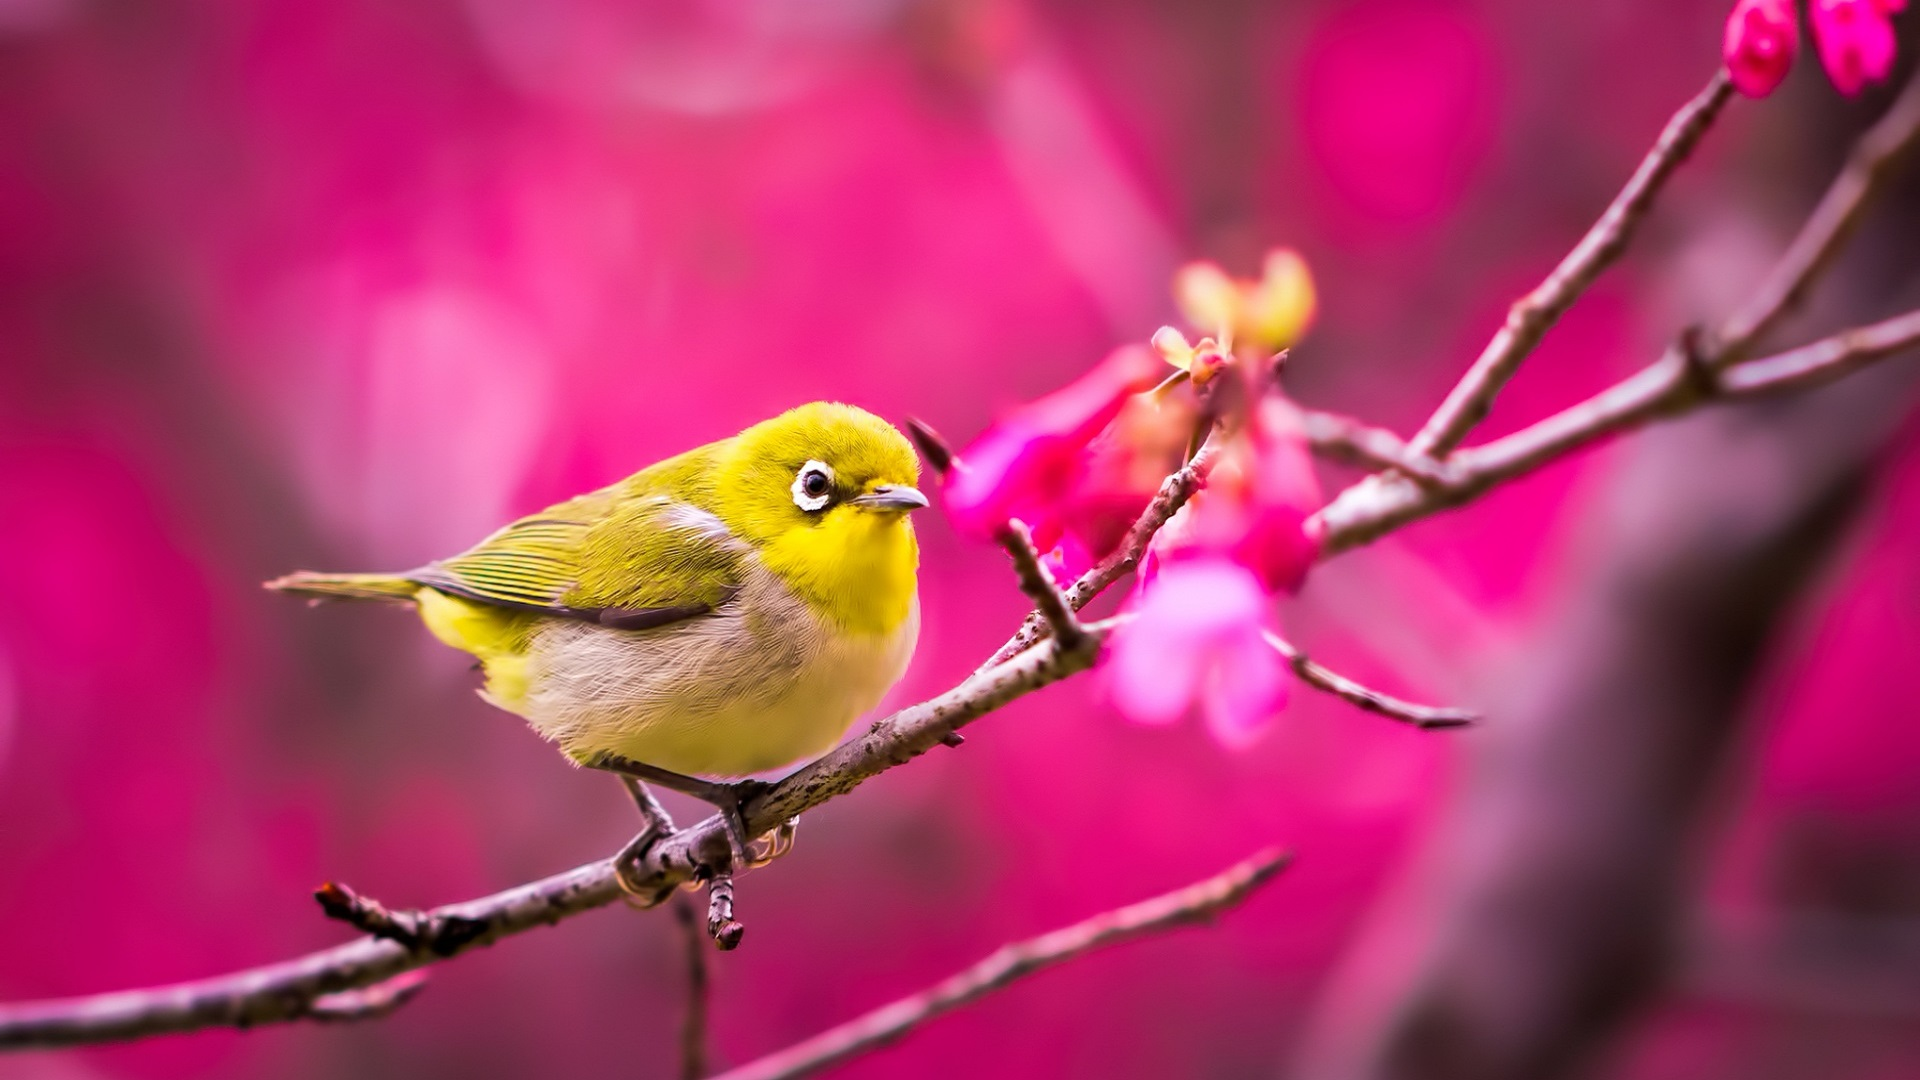 pretty little bird wallpaper - photo #14